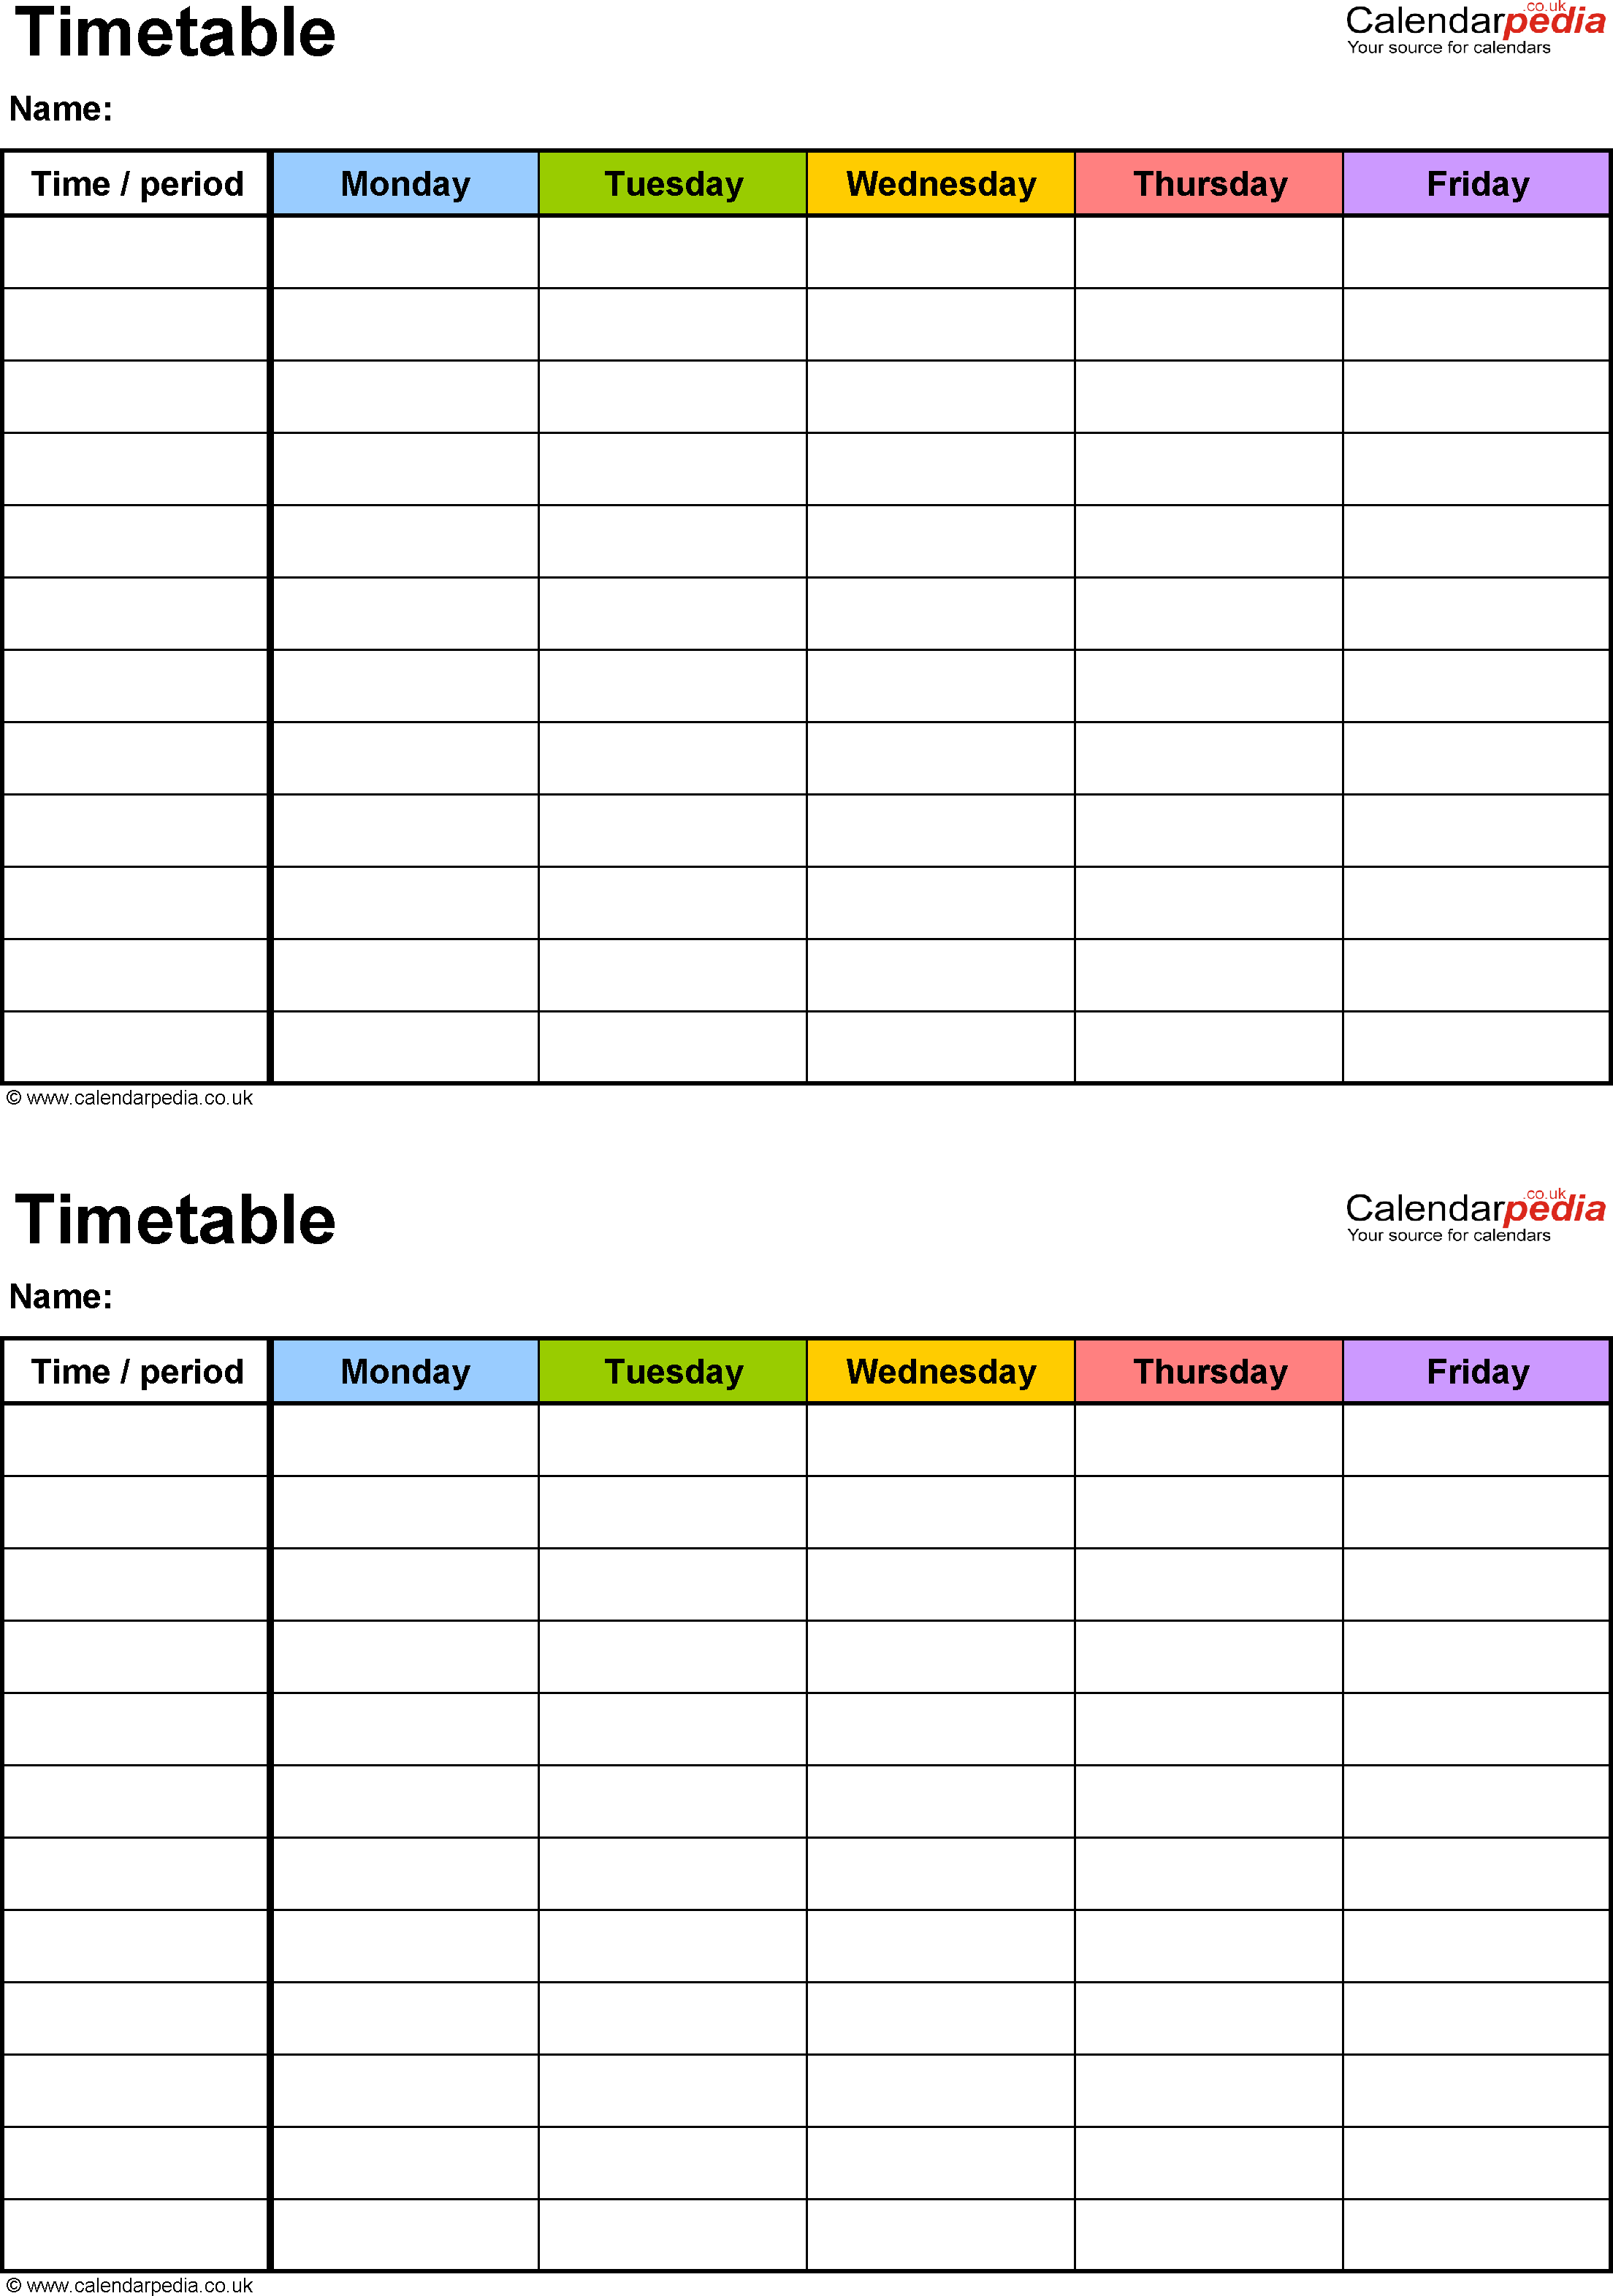 Excel Timetable Template 6 2 A5 Timetables On One Page